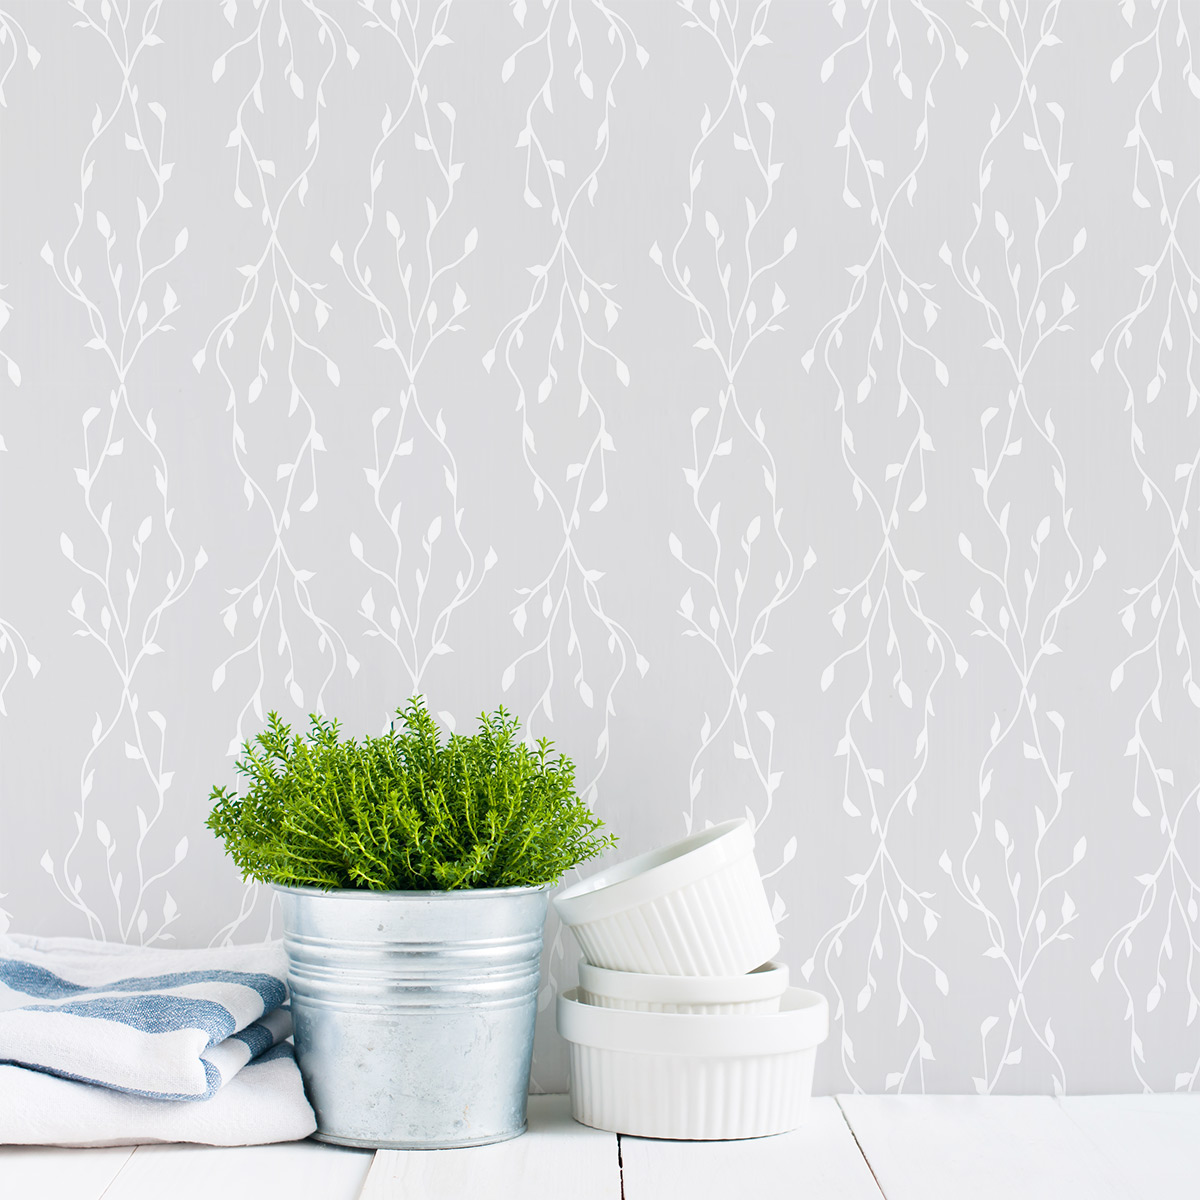 """Removable Wallpaper Tiles clearance] 24"""" neverending vines removable wallpaper tile"""